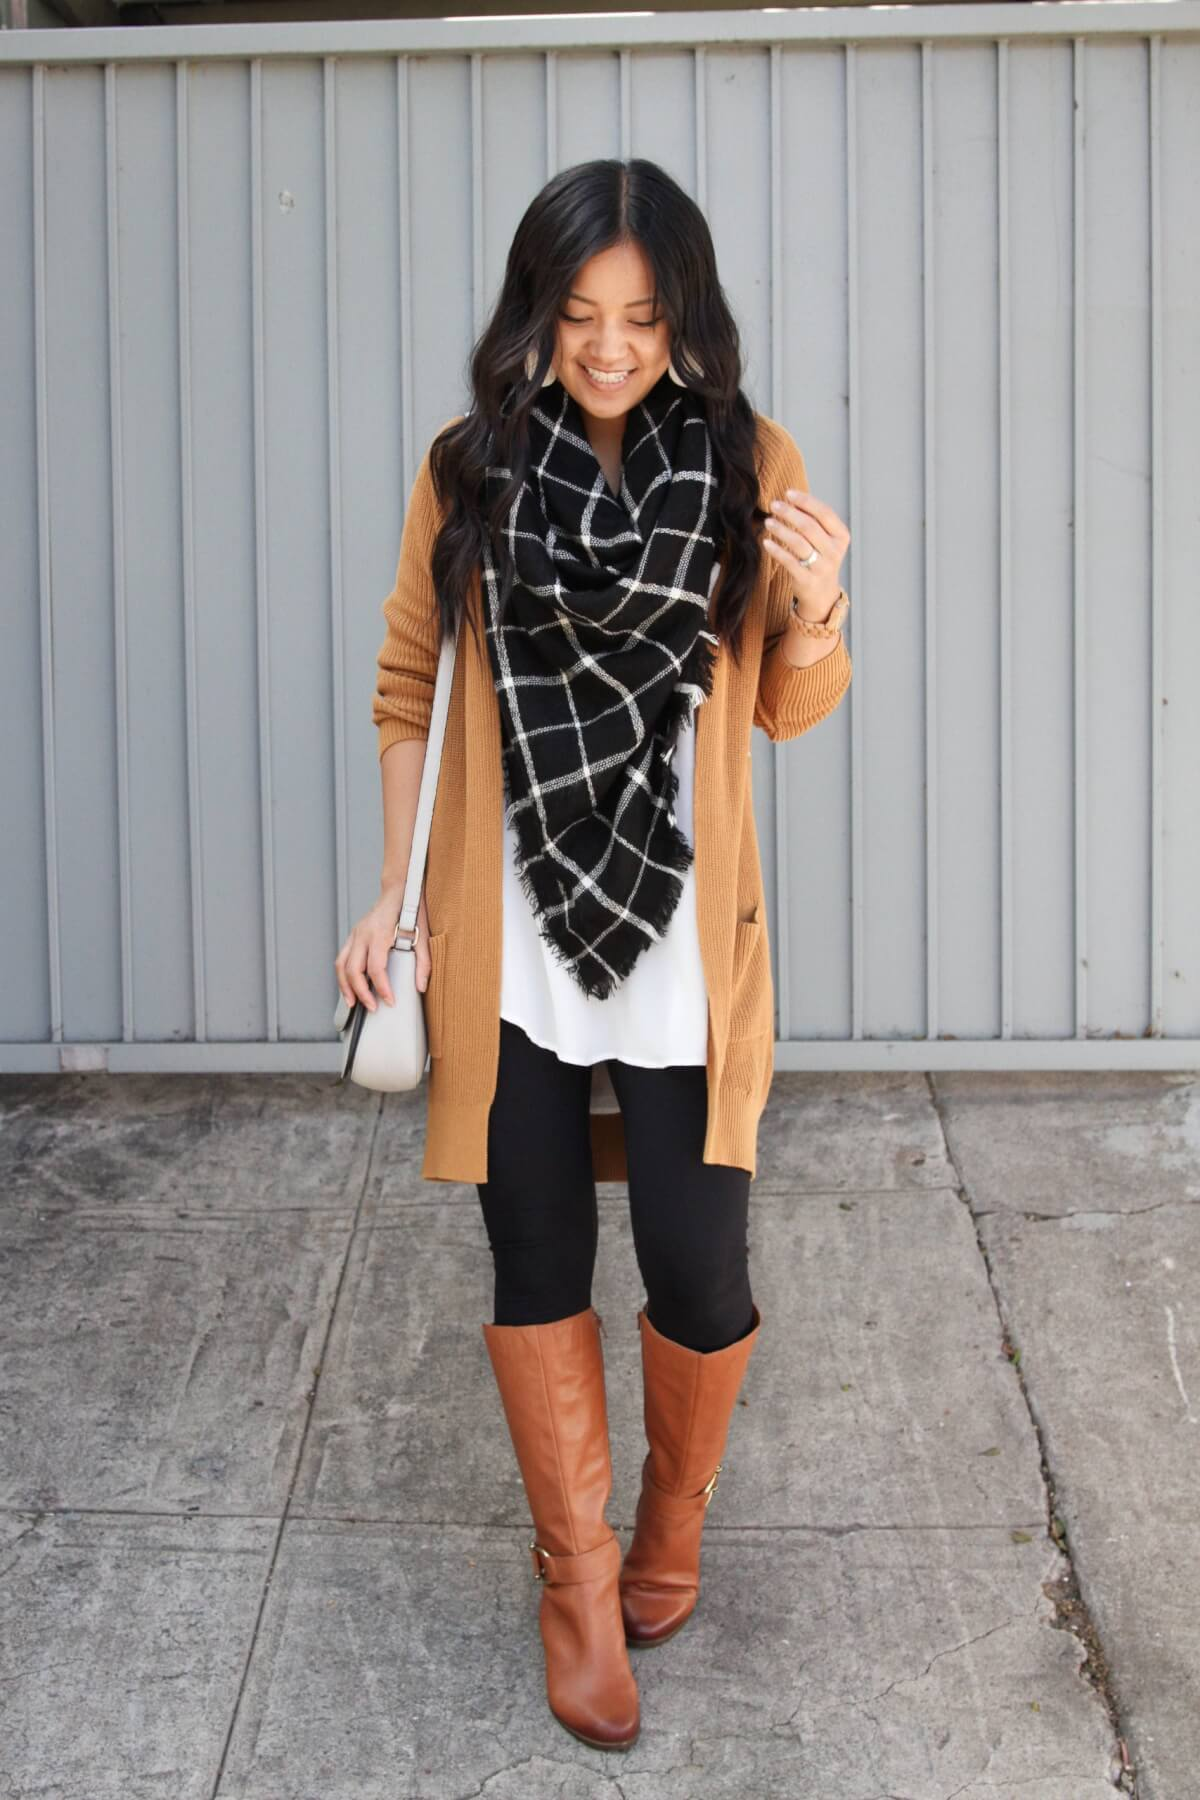 Winter Leggings Outfit: white tunic + tan cardigan + black and white plaid blanket scarf + black leggings + cognac leather boots + grey crossbody bag + metallic leather earrings